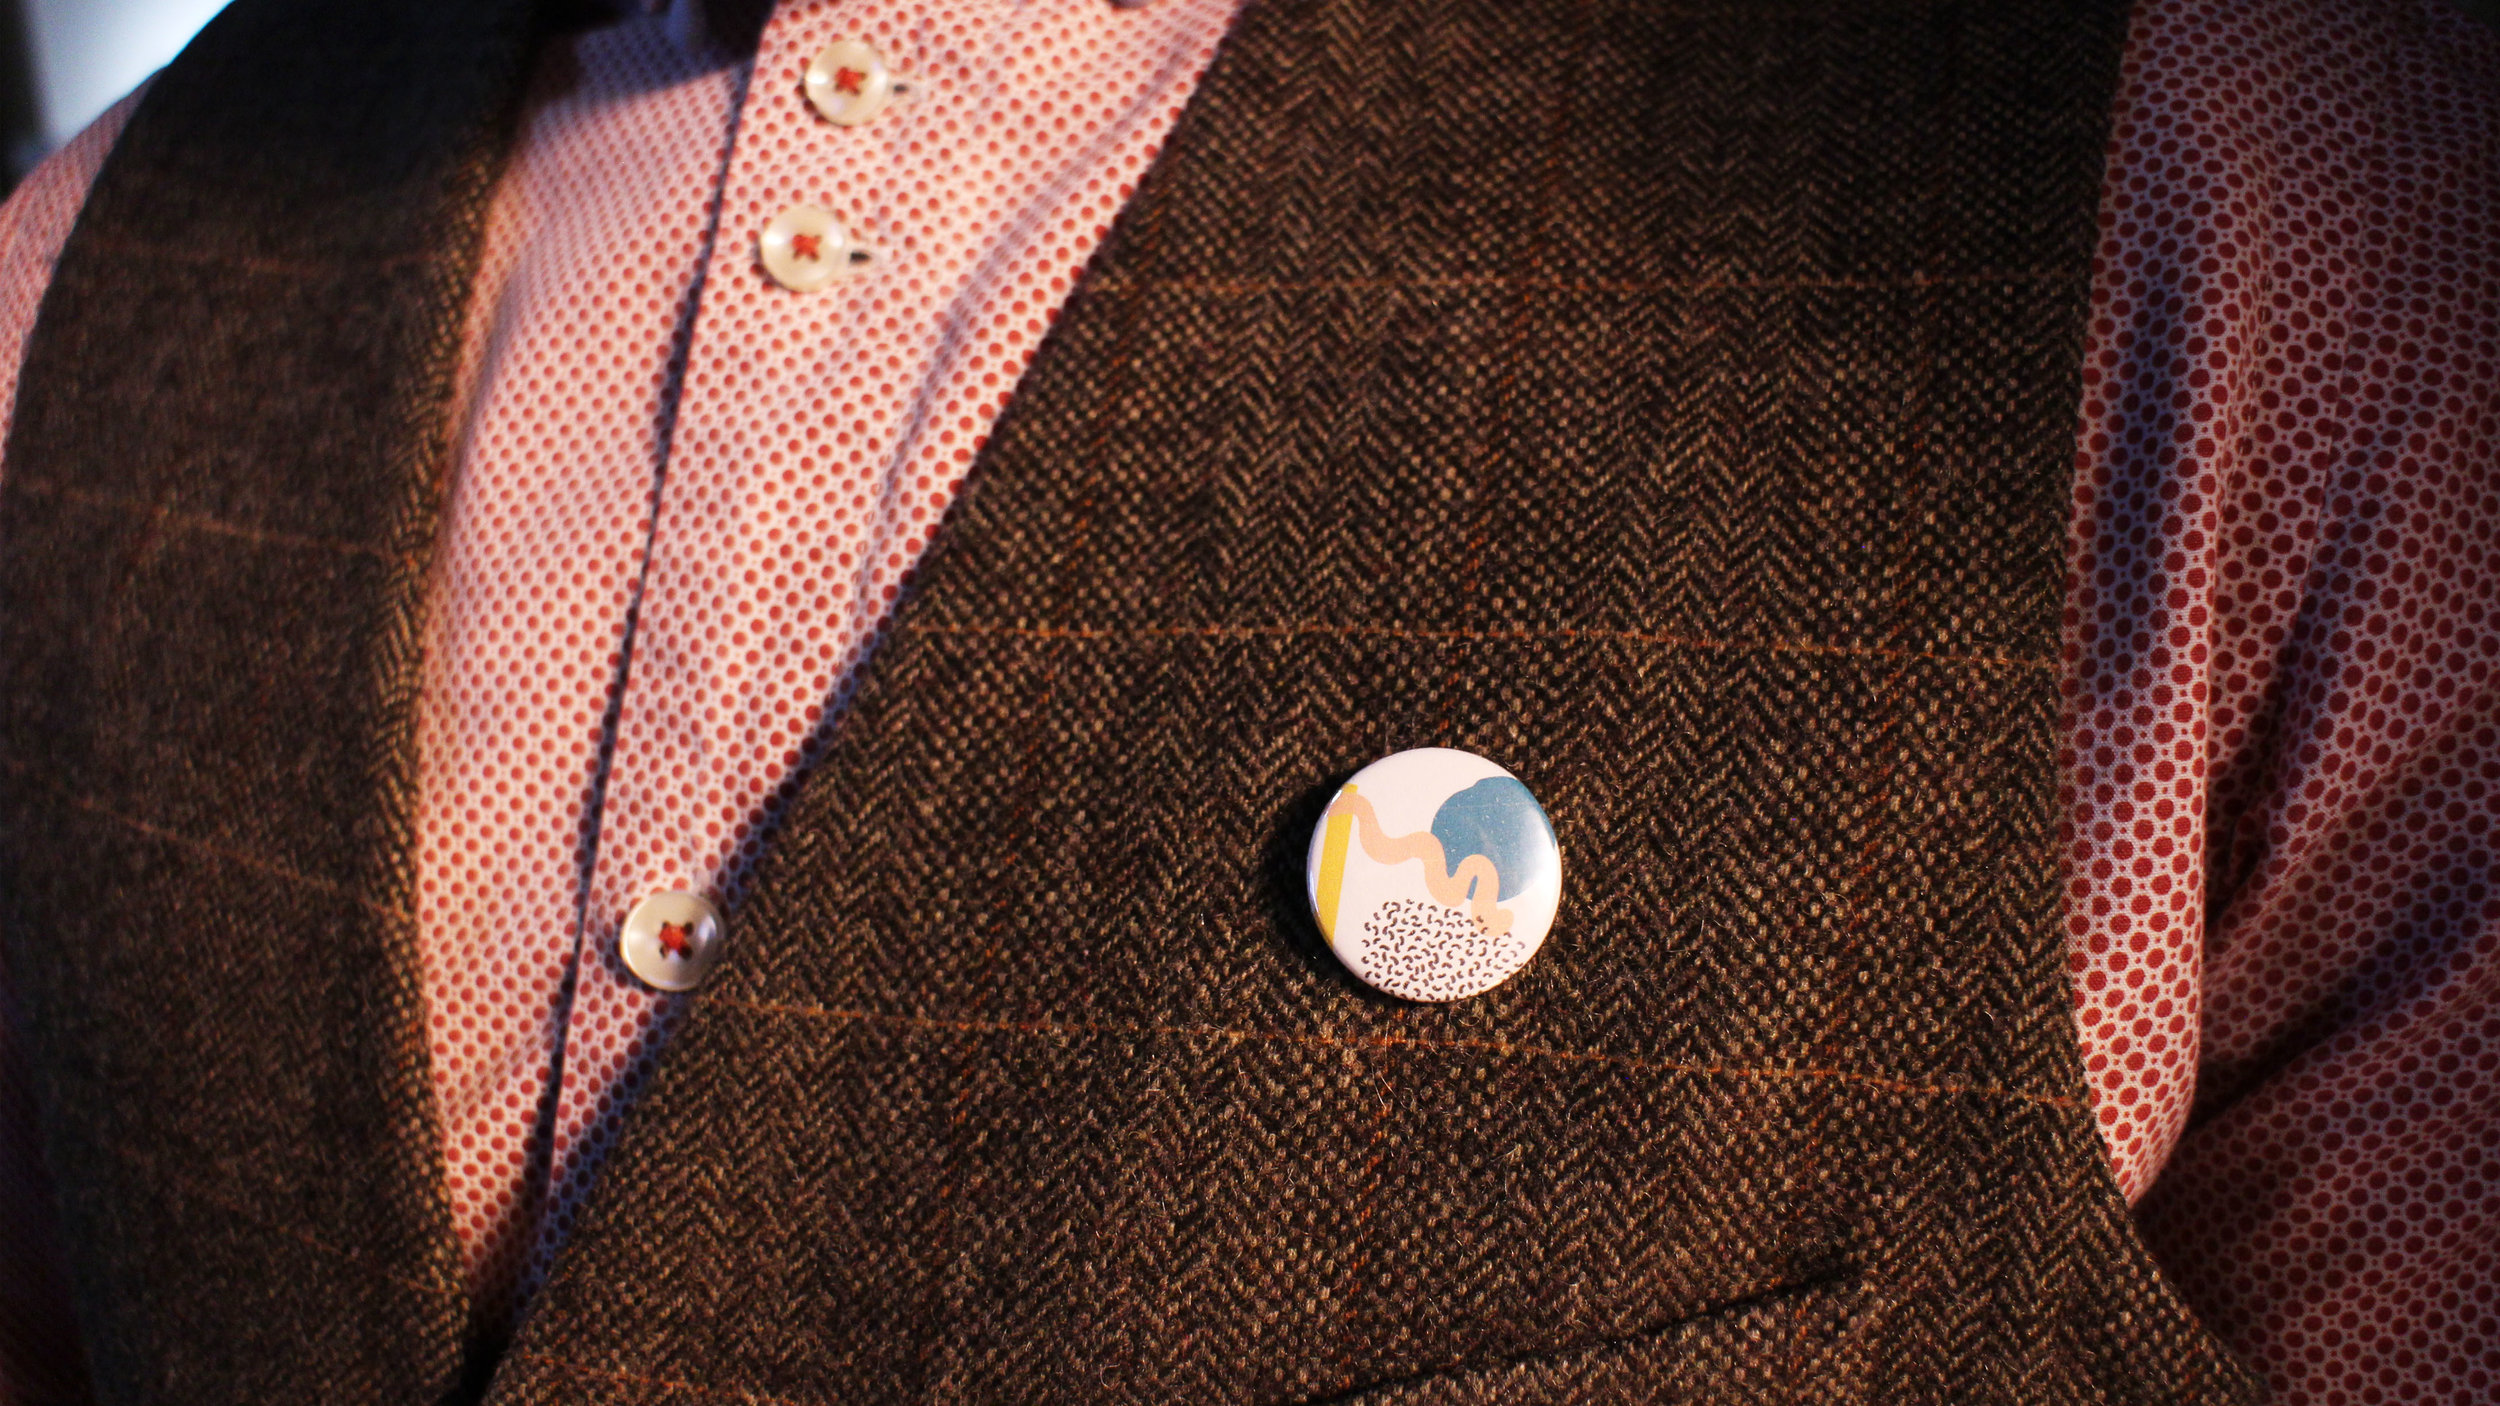 Personalised pins, adapted from Meyers Briggs Type Indicator